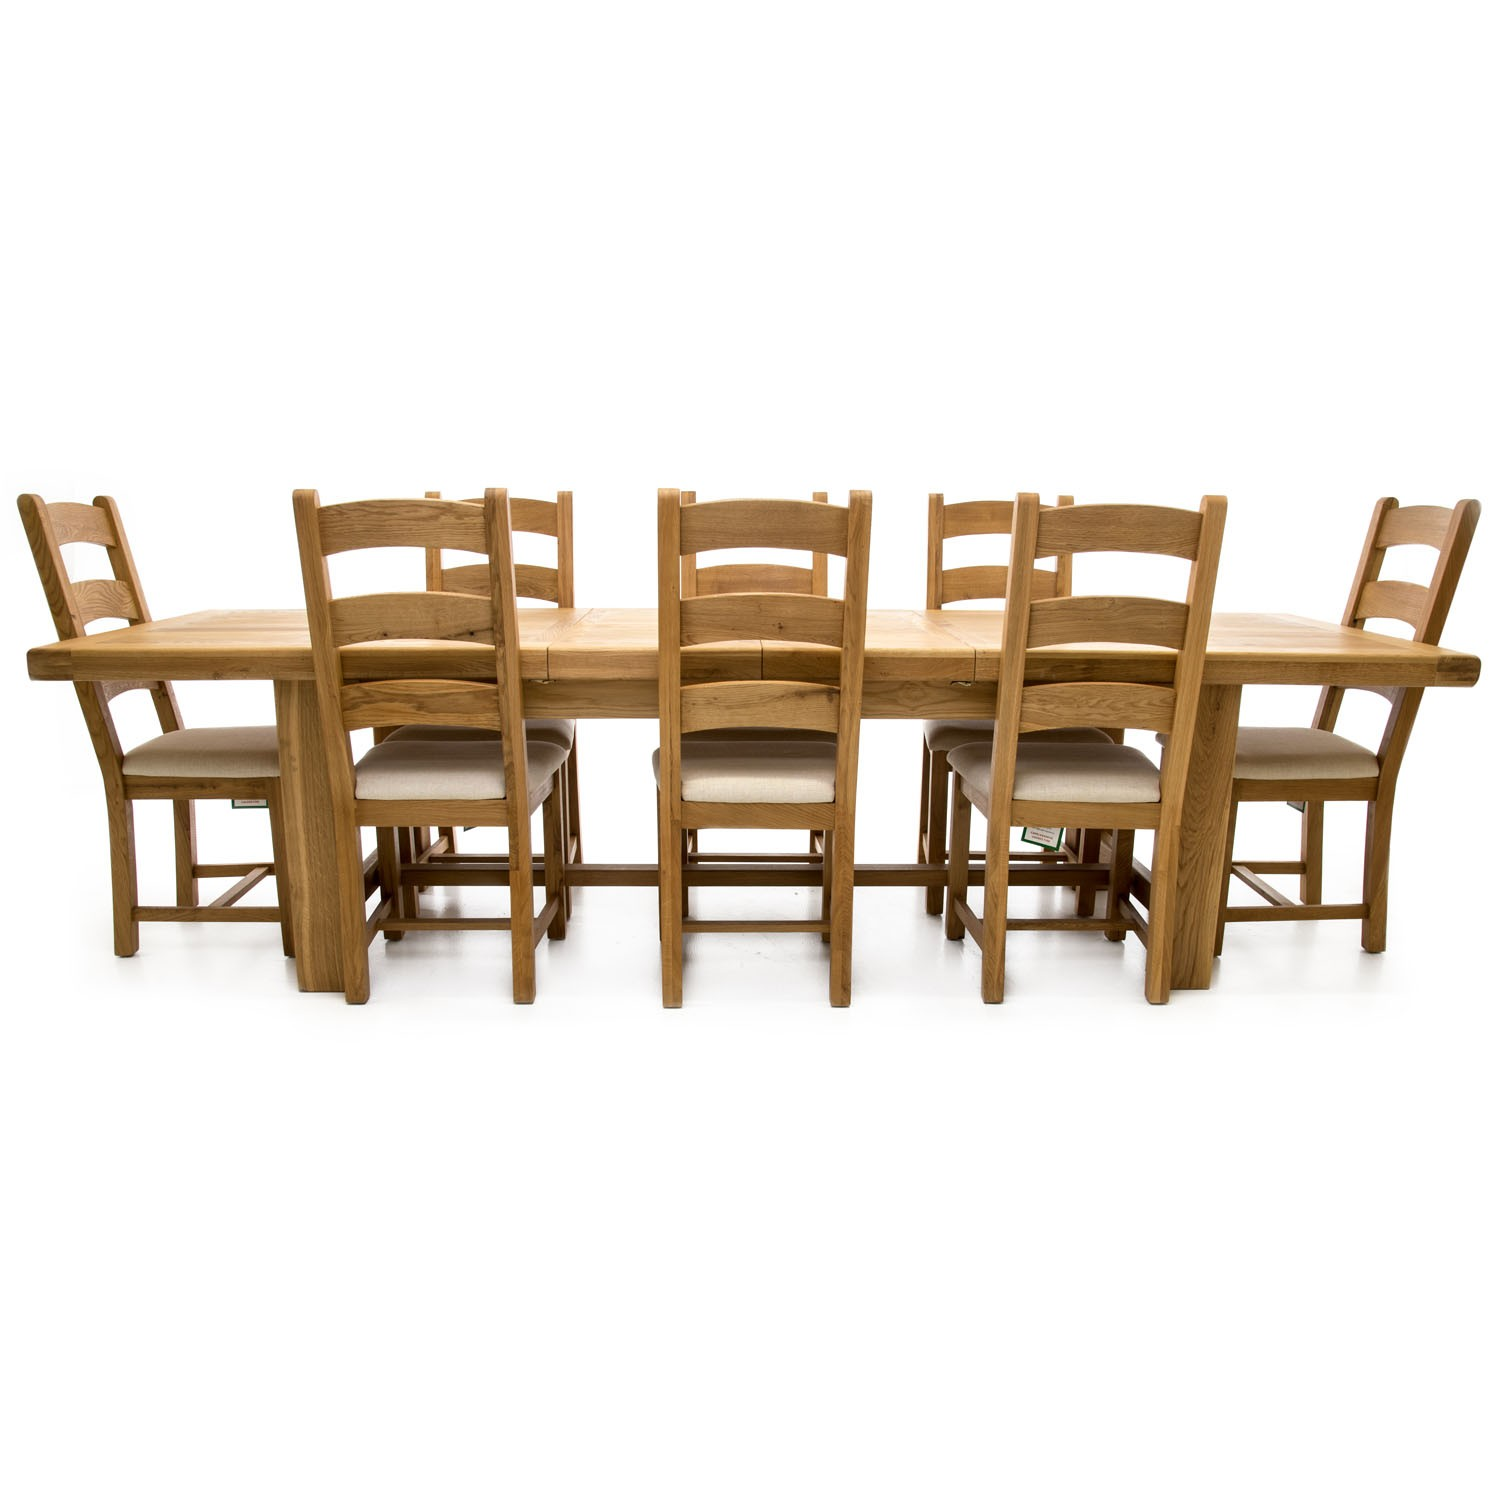 Casa Fairford Large Extending Table amp 8 Chairs Leekes : 659148l from www.leekes.co.uk size 1500 x 1500 jpeg 158kB